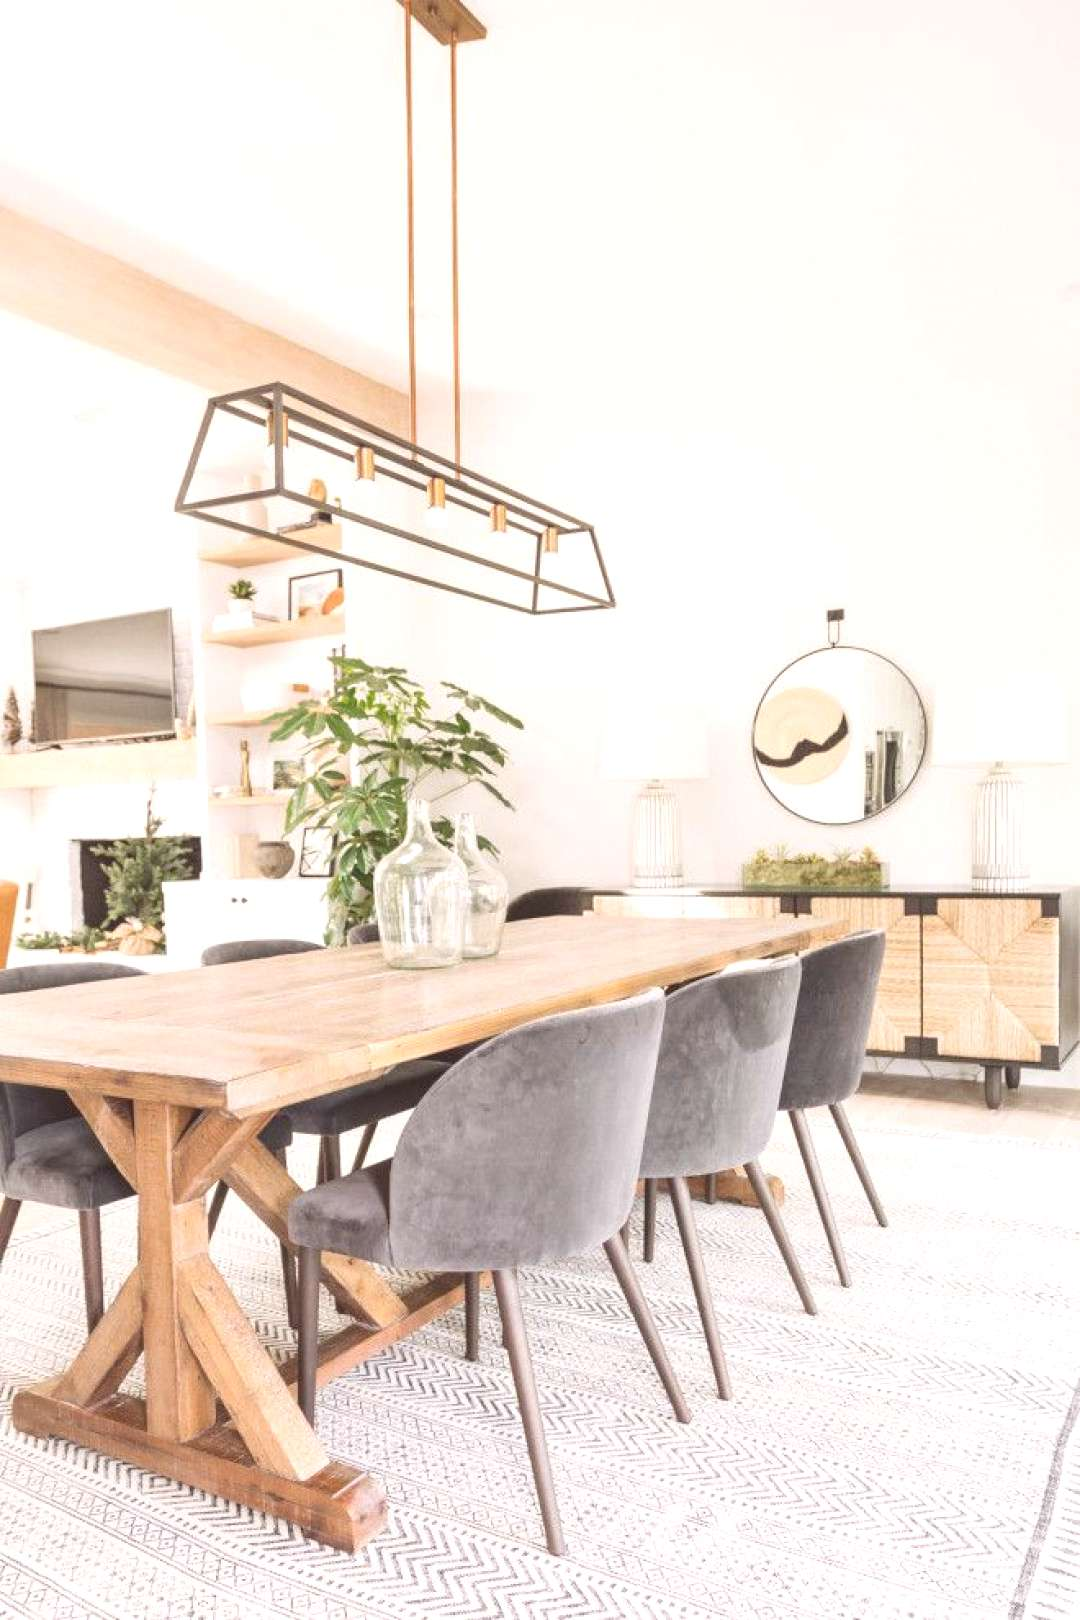 Dining Table This dining room was beautifully decorated by this talented interior designer. It feat